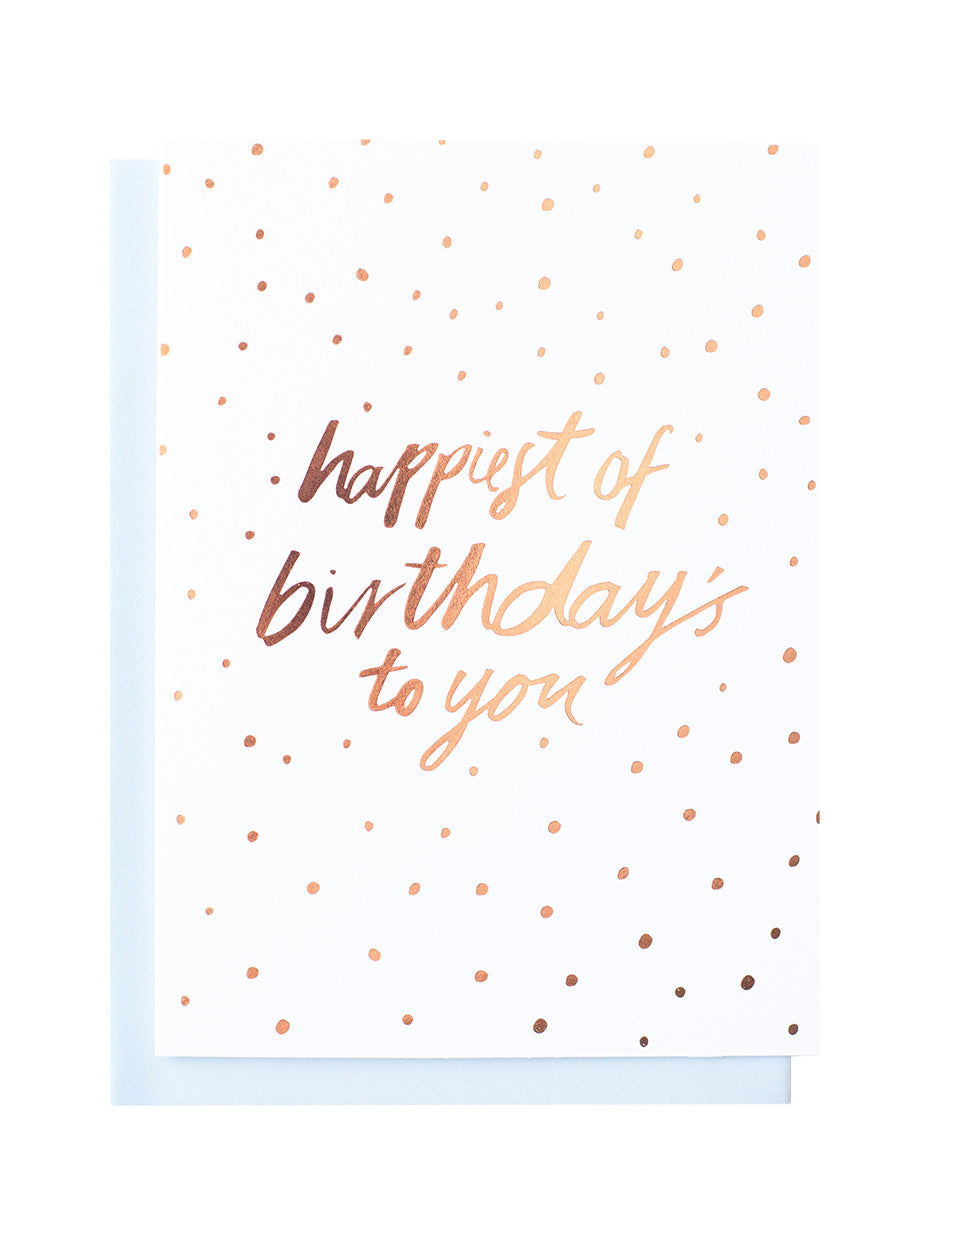 Happy Birthday Sweet foiled greeting card | Blushing Confetti